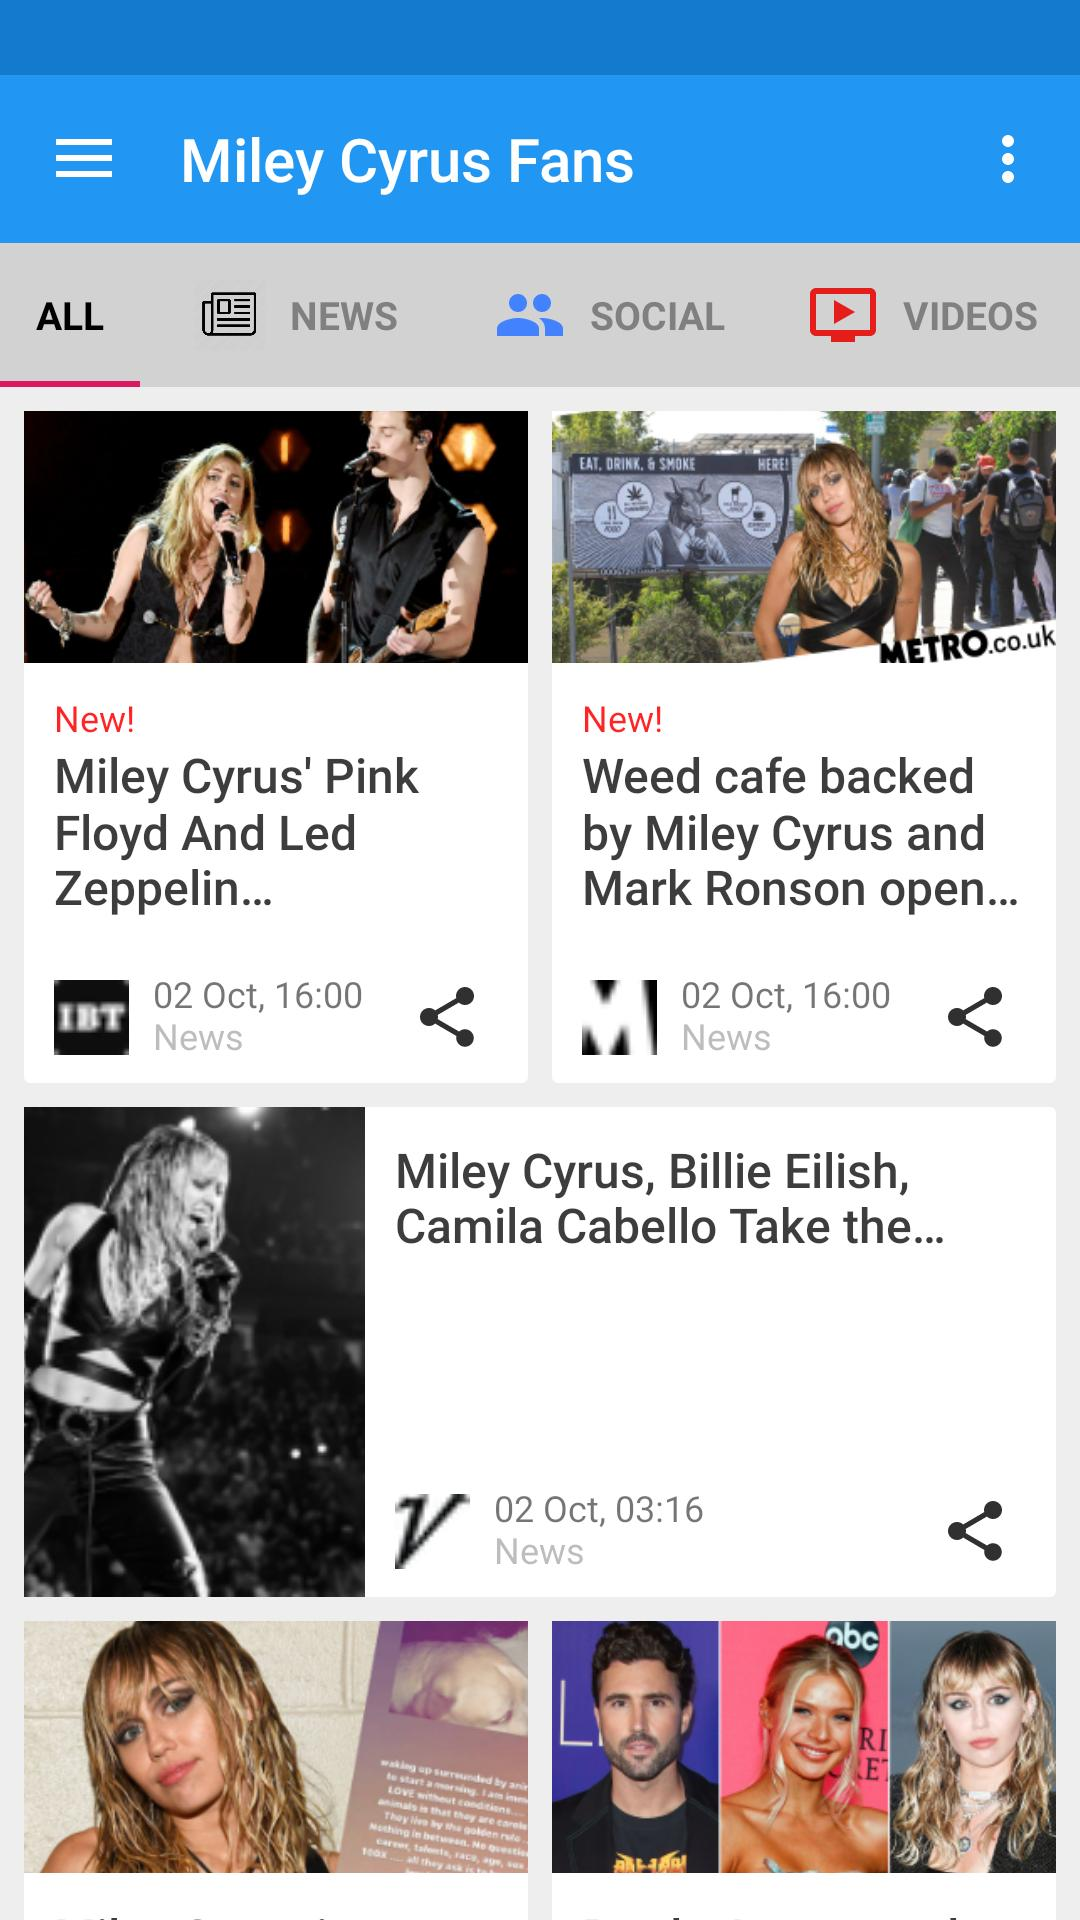 Miley Cyrus Fan Club News And Updates For Android Apk Download